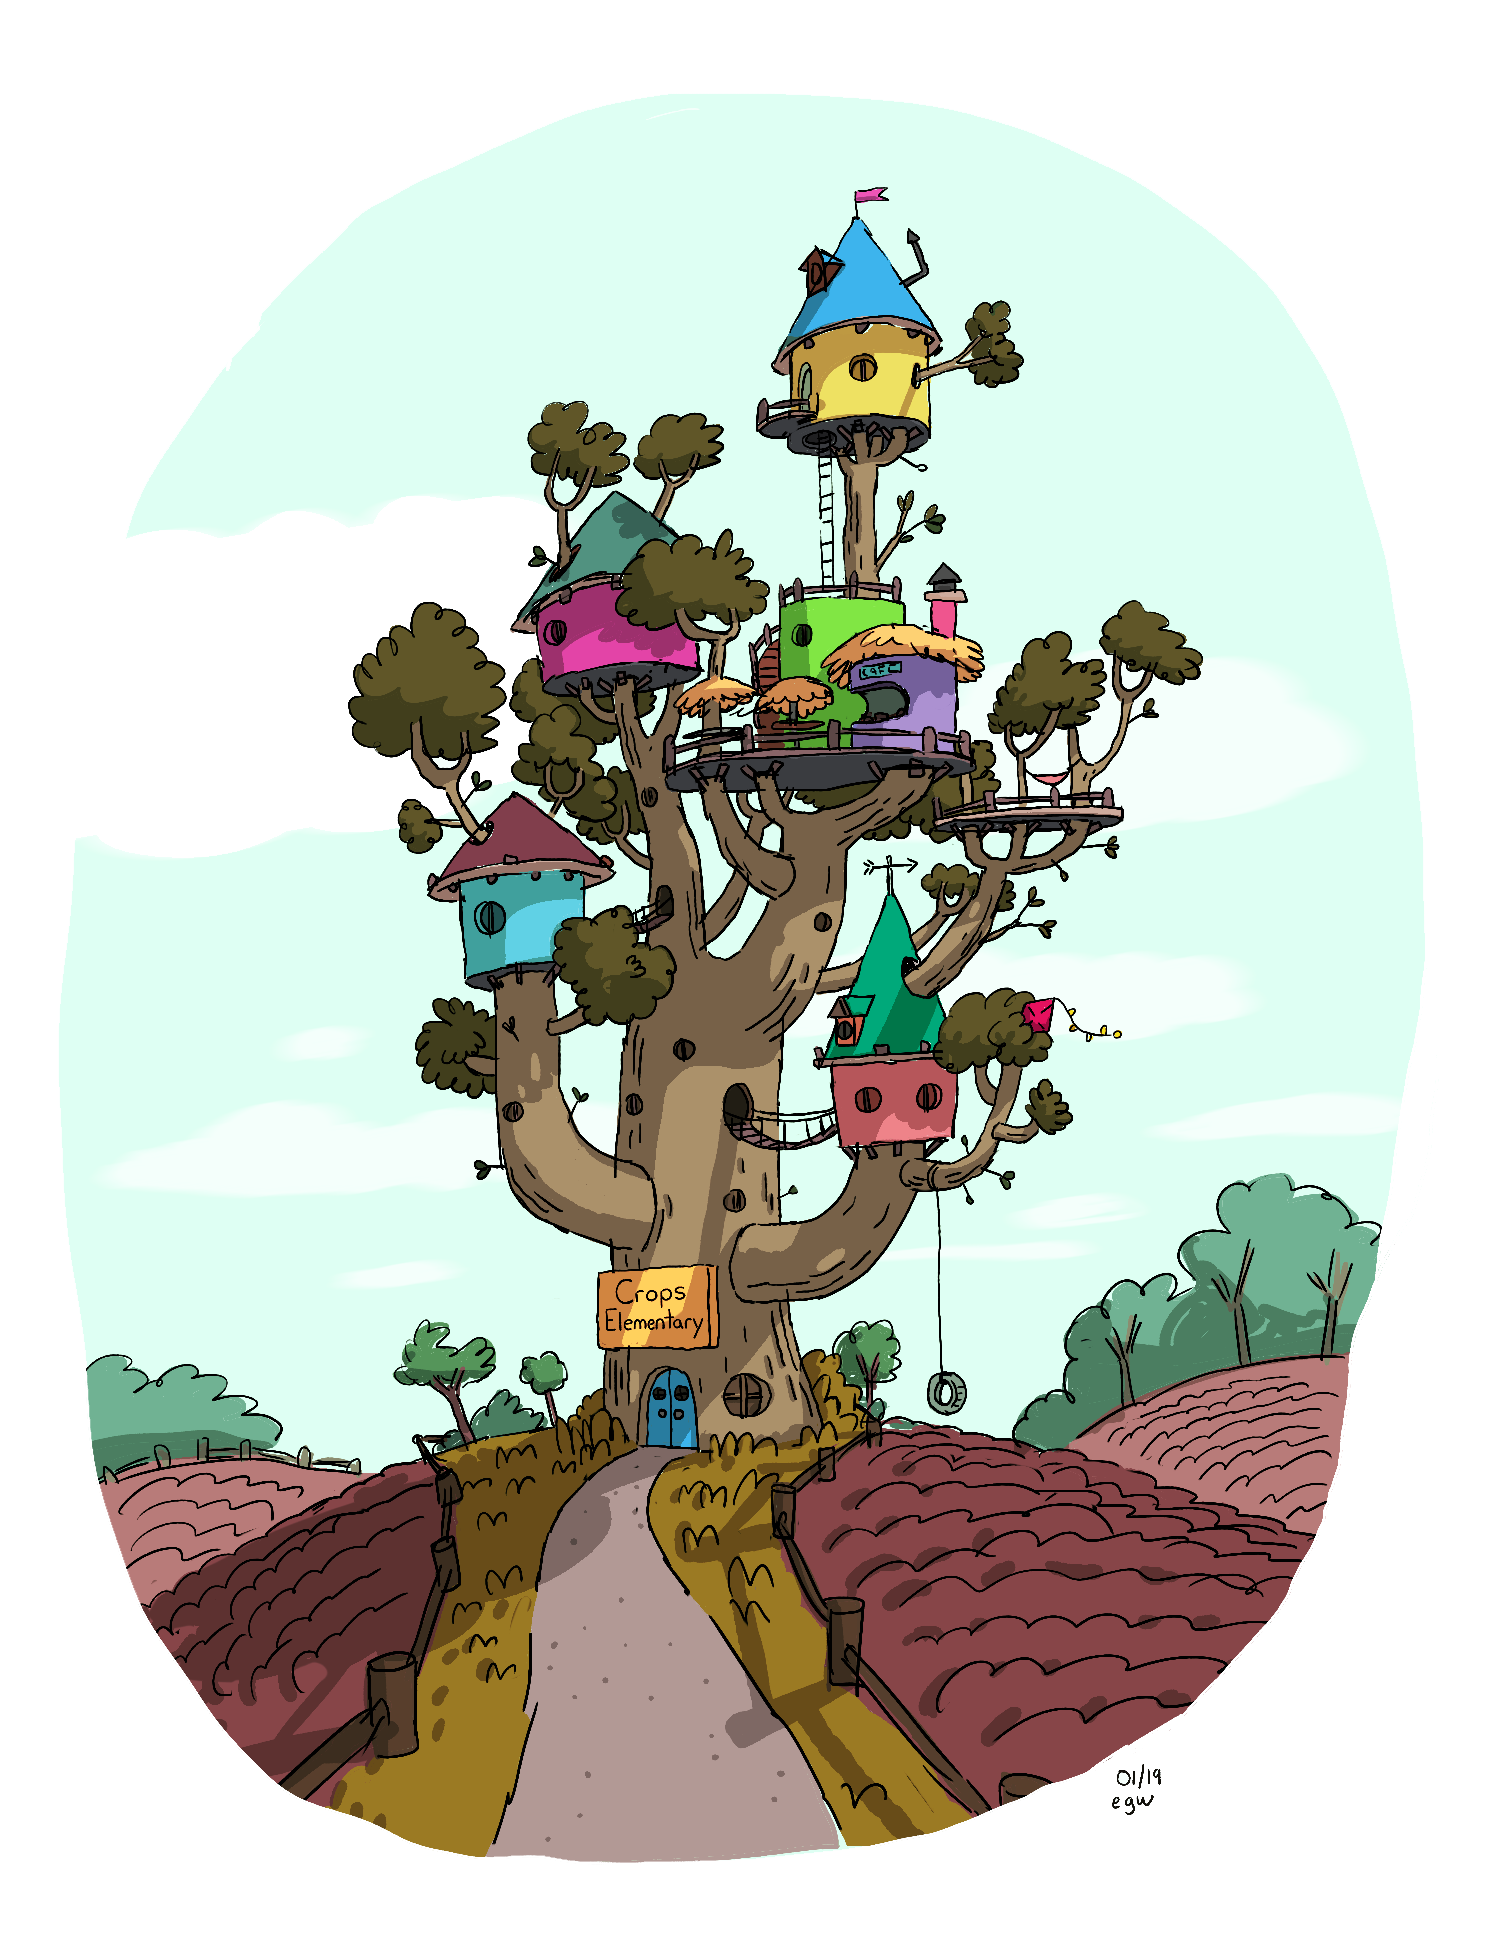 Crops_tree.png